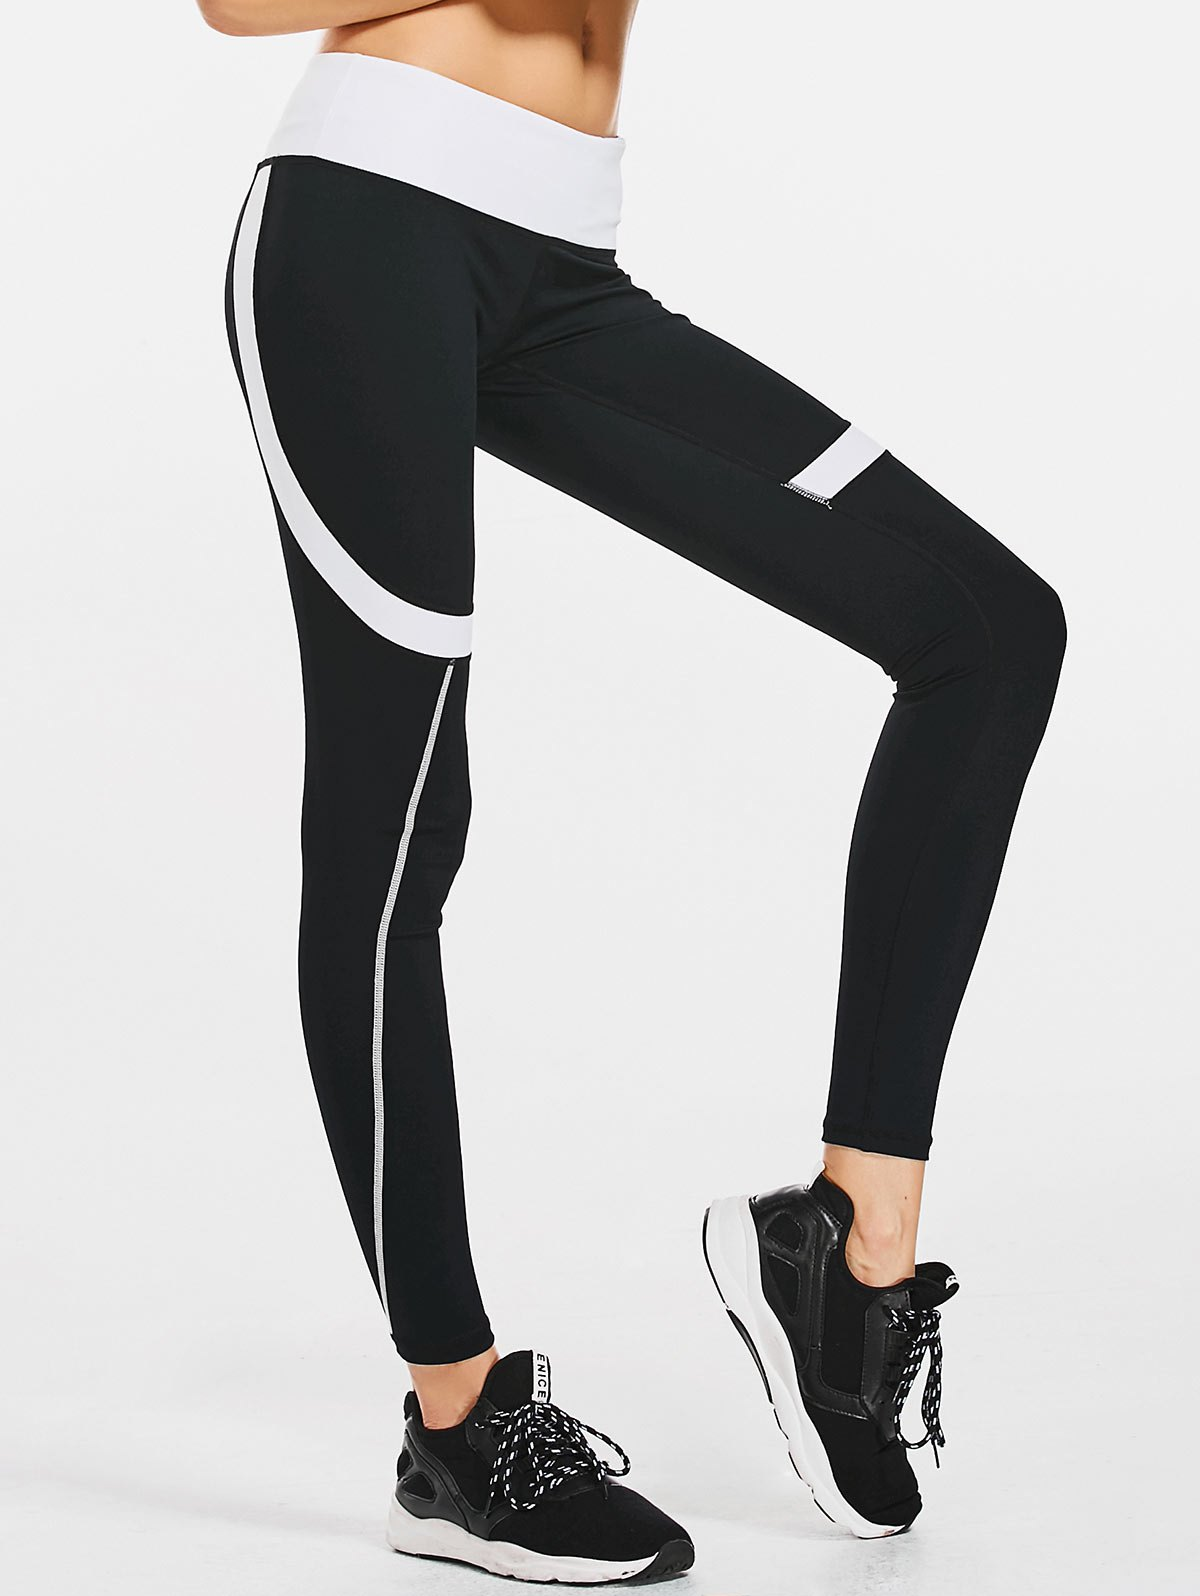 Stretchy Sporty Color Block Leggings 217519901